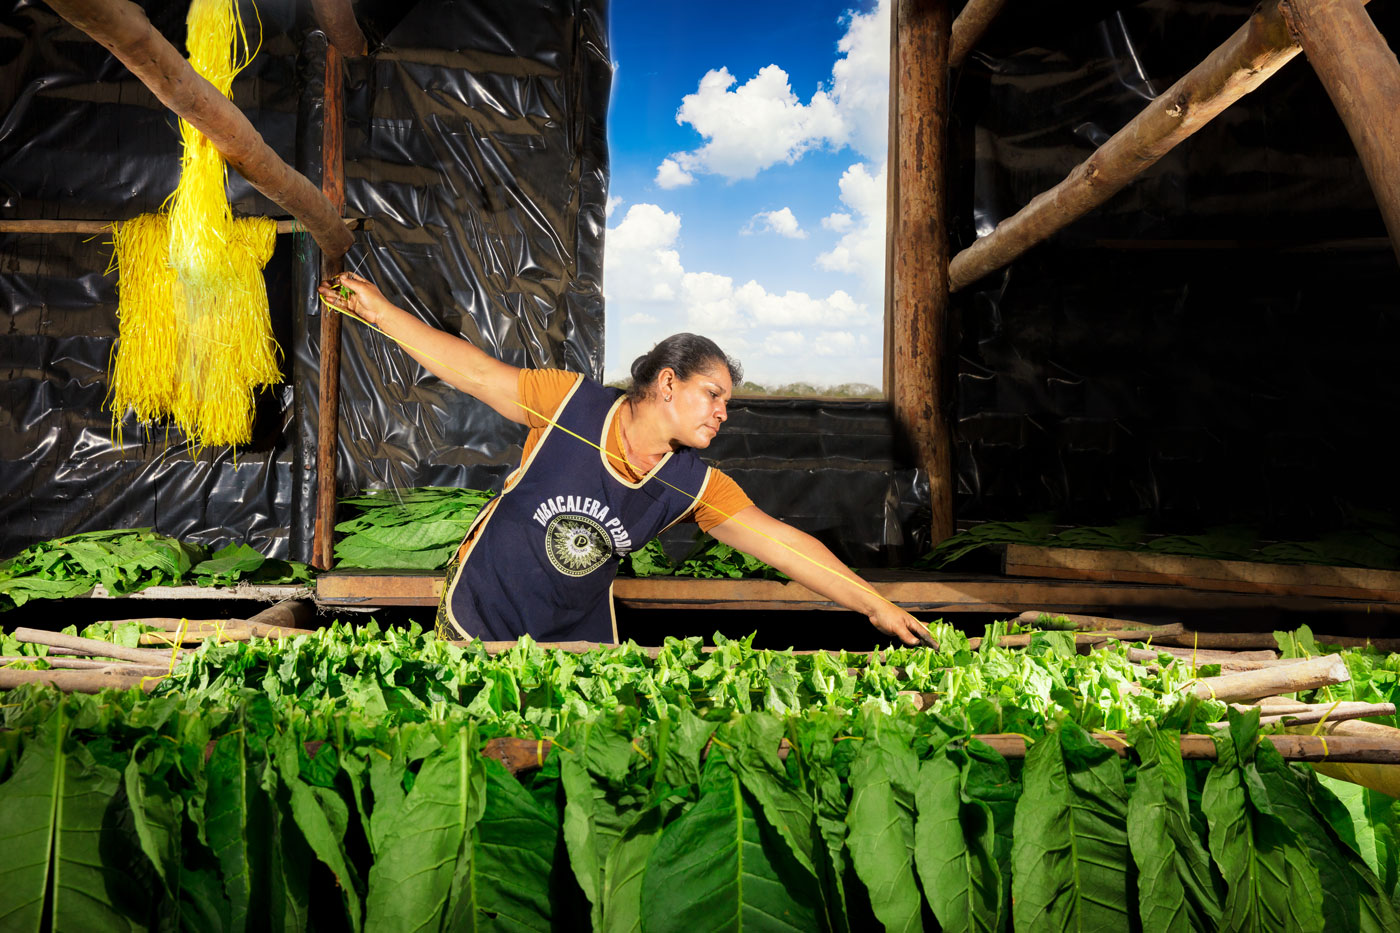 Stringing Tobacco in the Curing Barn